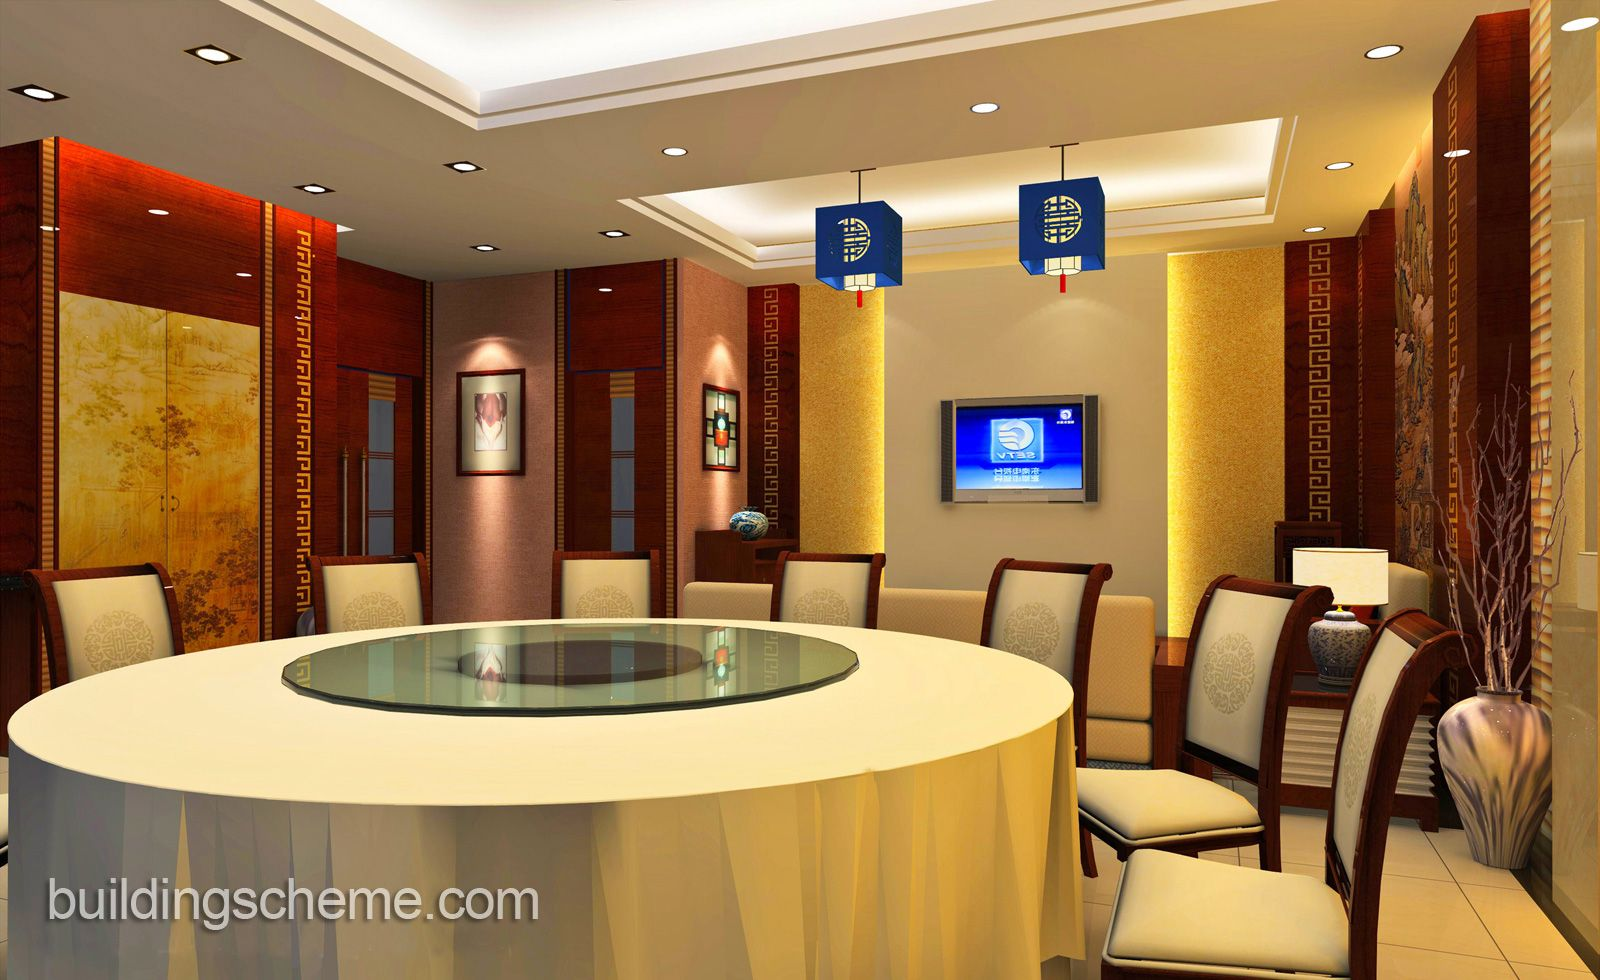 Cool Wallpaper Luxury Chinese Restaurant Interior Design And The Dining Table For 14 People